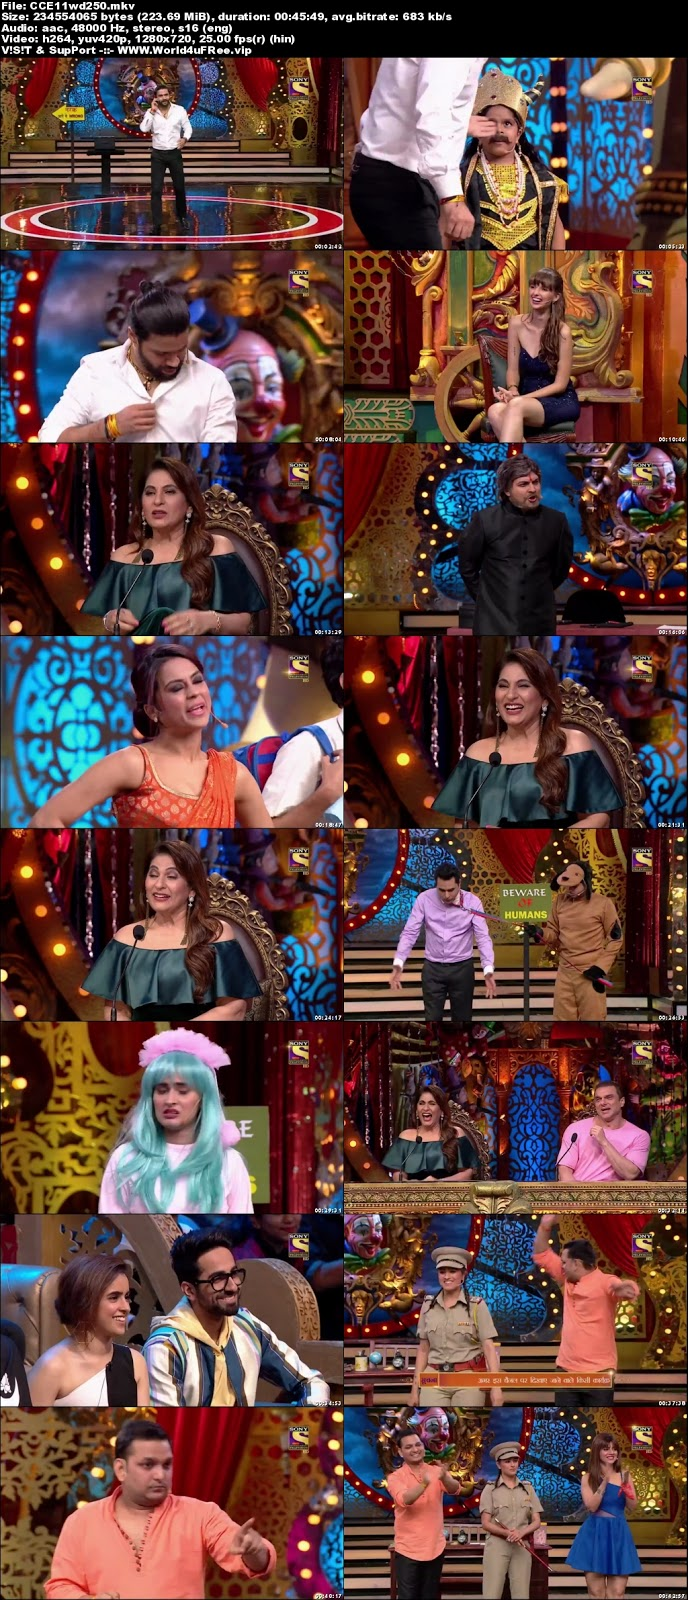 Comedy Circus 2018 Episode 11 720p WEBRip 250mb x264 world4ufree.fun tv show Comedy Circus 2018 hindi tv show Comedy Circus 2018  Season 1 sony tv show compressed small size free download or watch online at world4ufree.fun